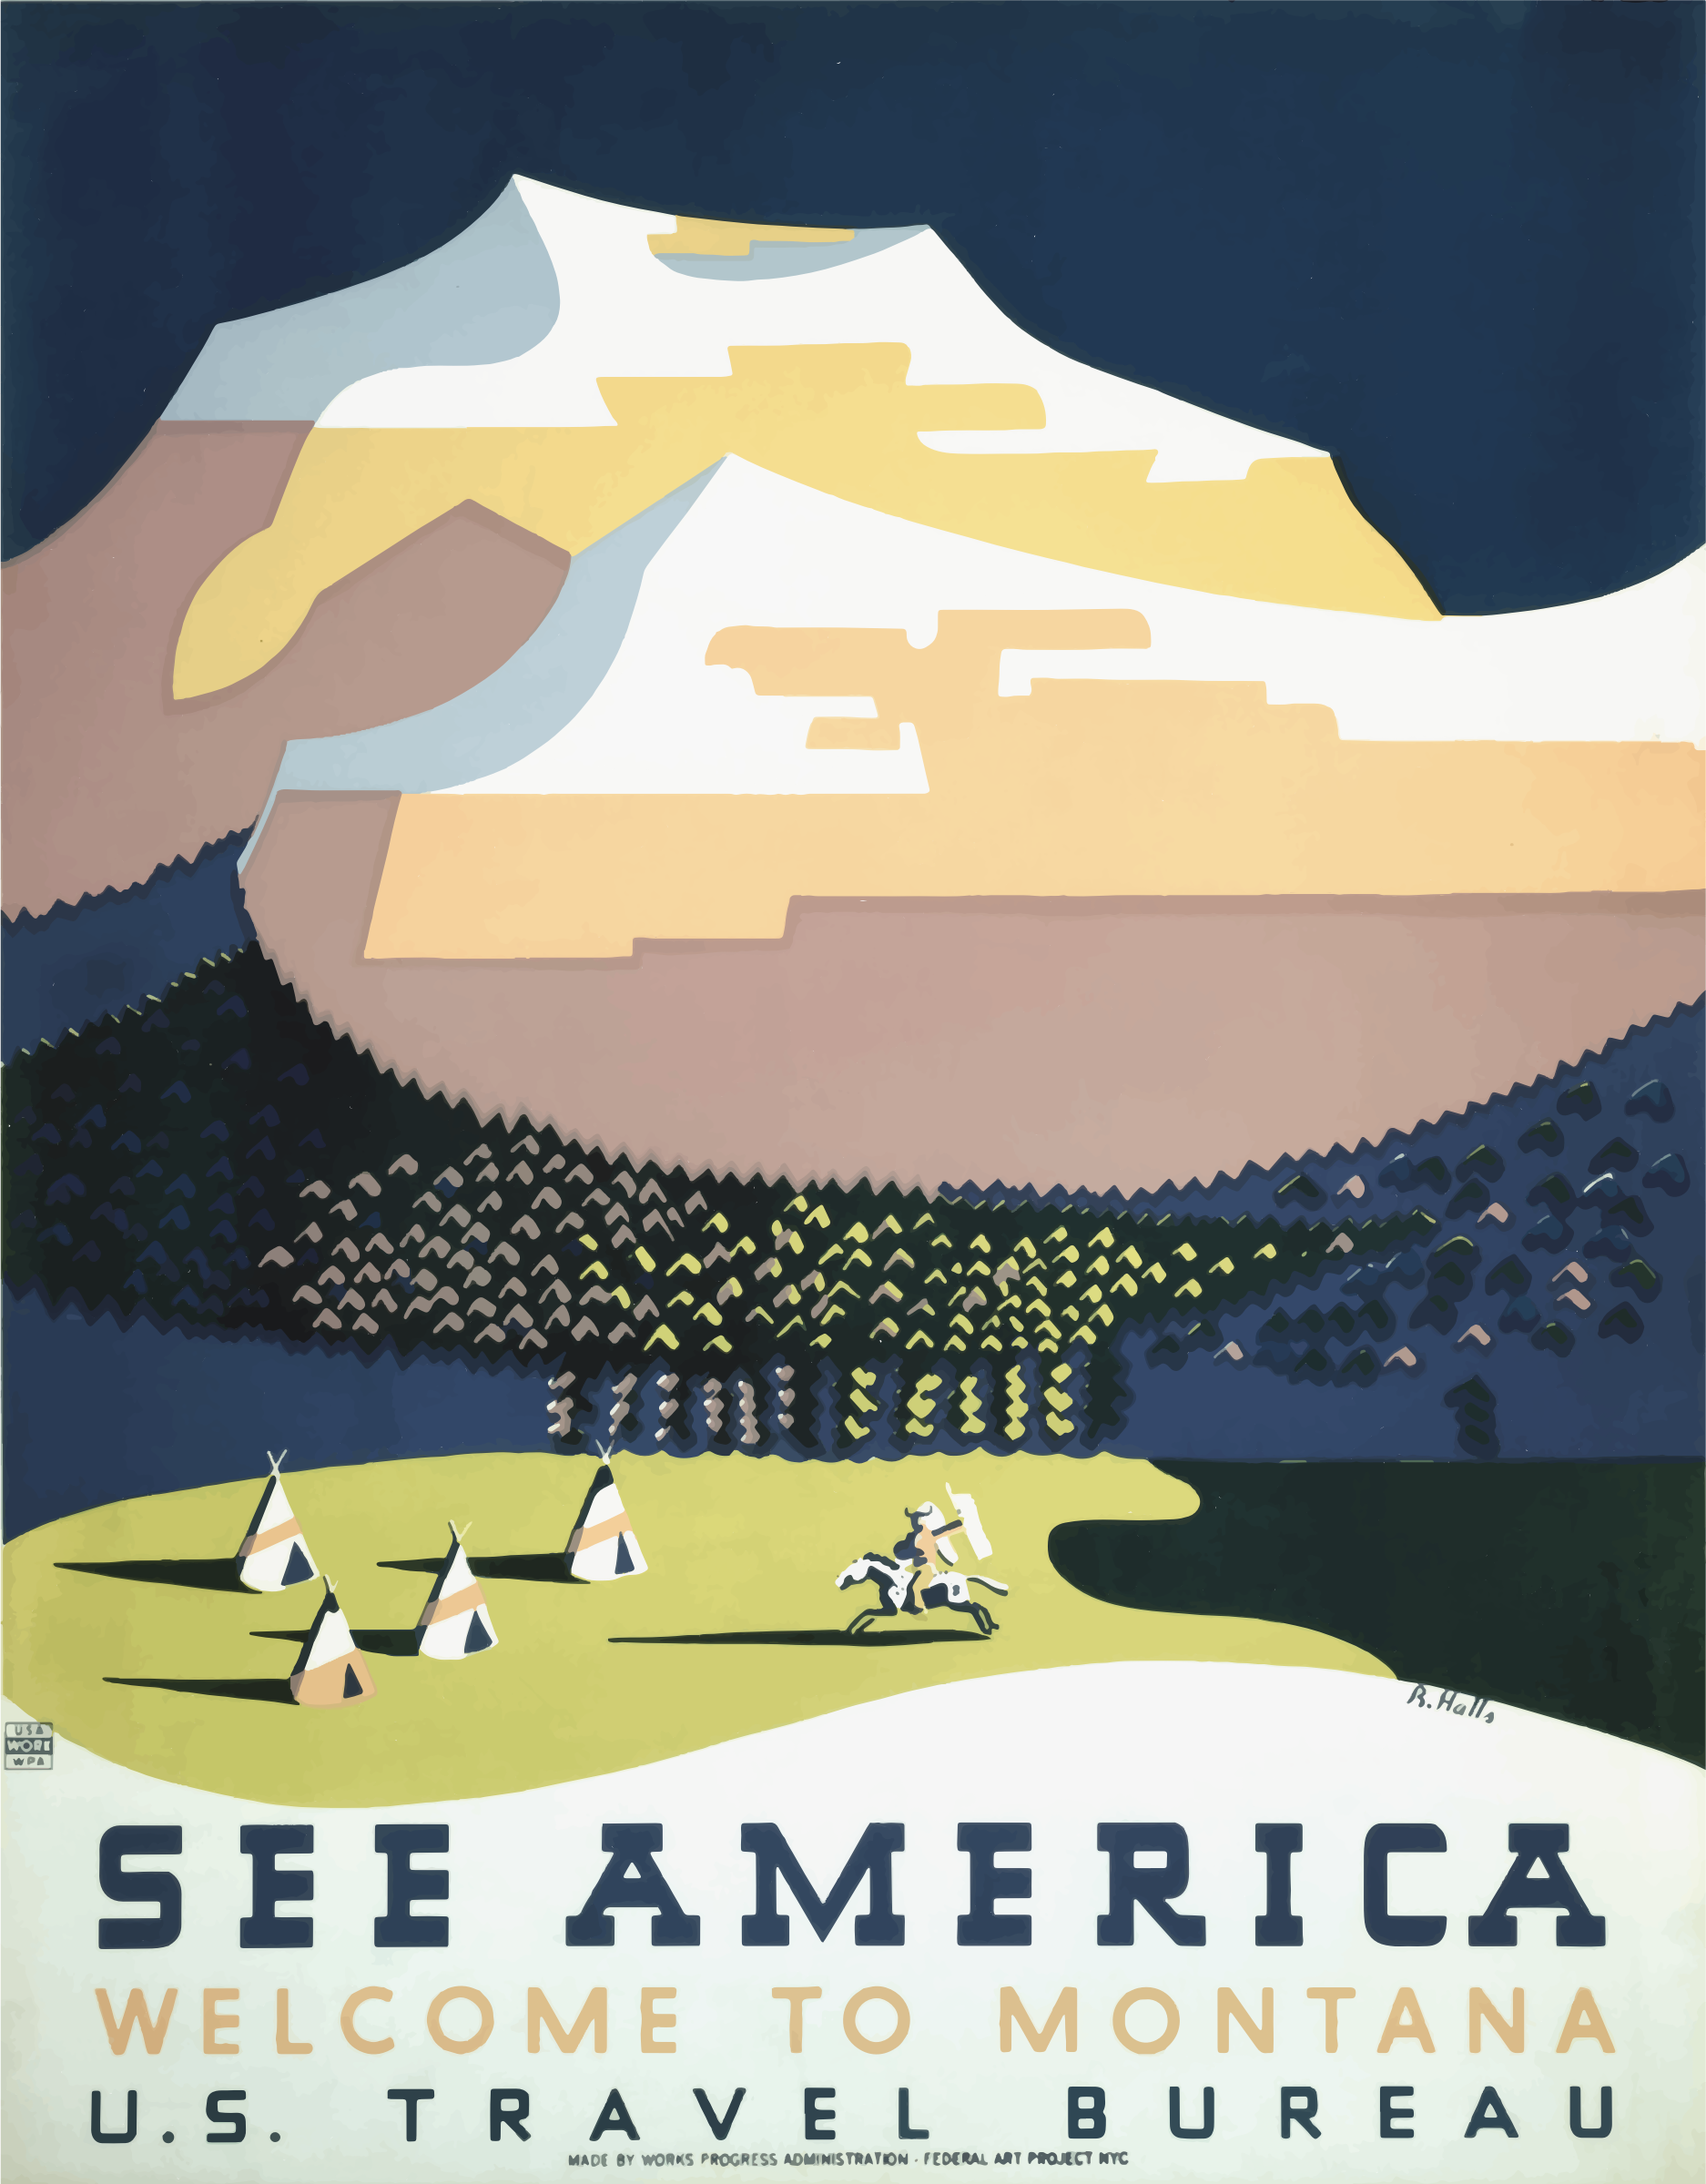 Vintage Travel Poster Montana America USA 2 by GDJ